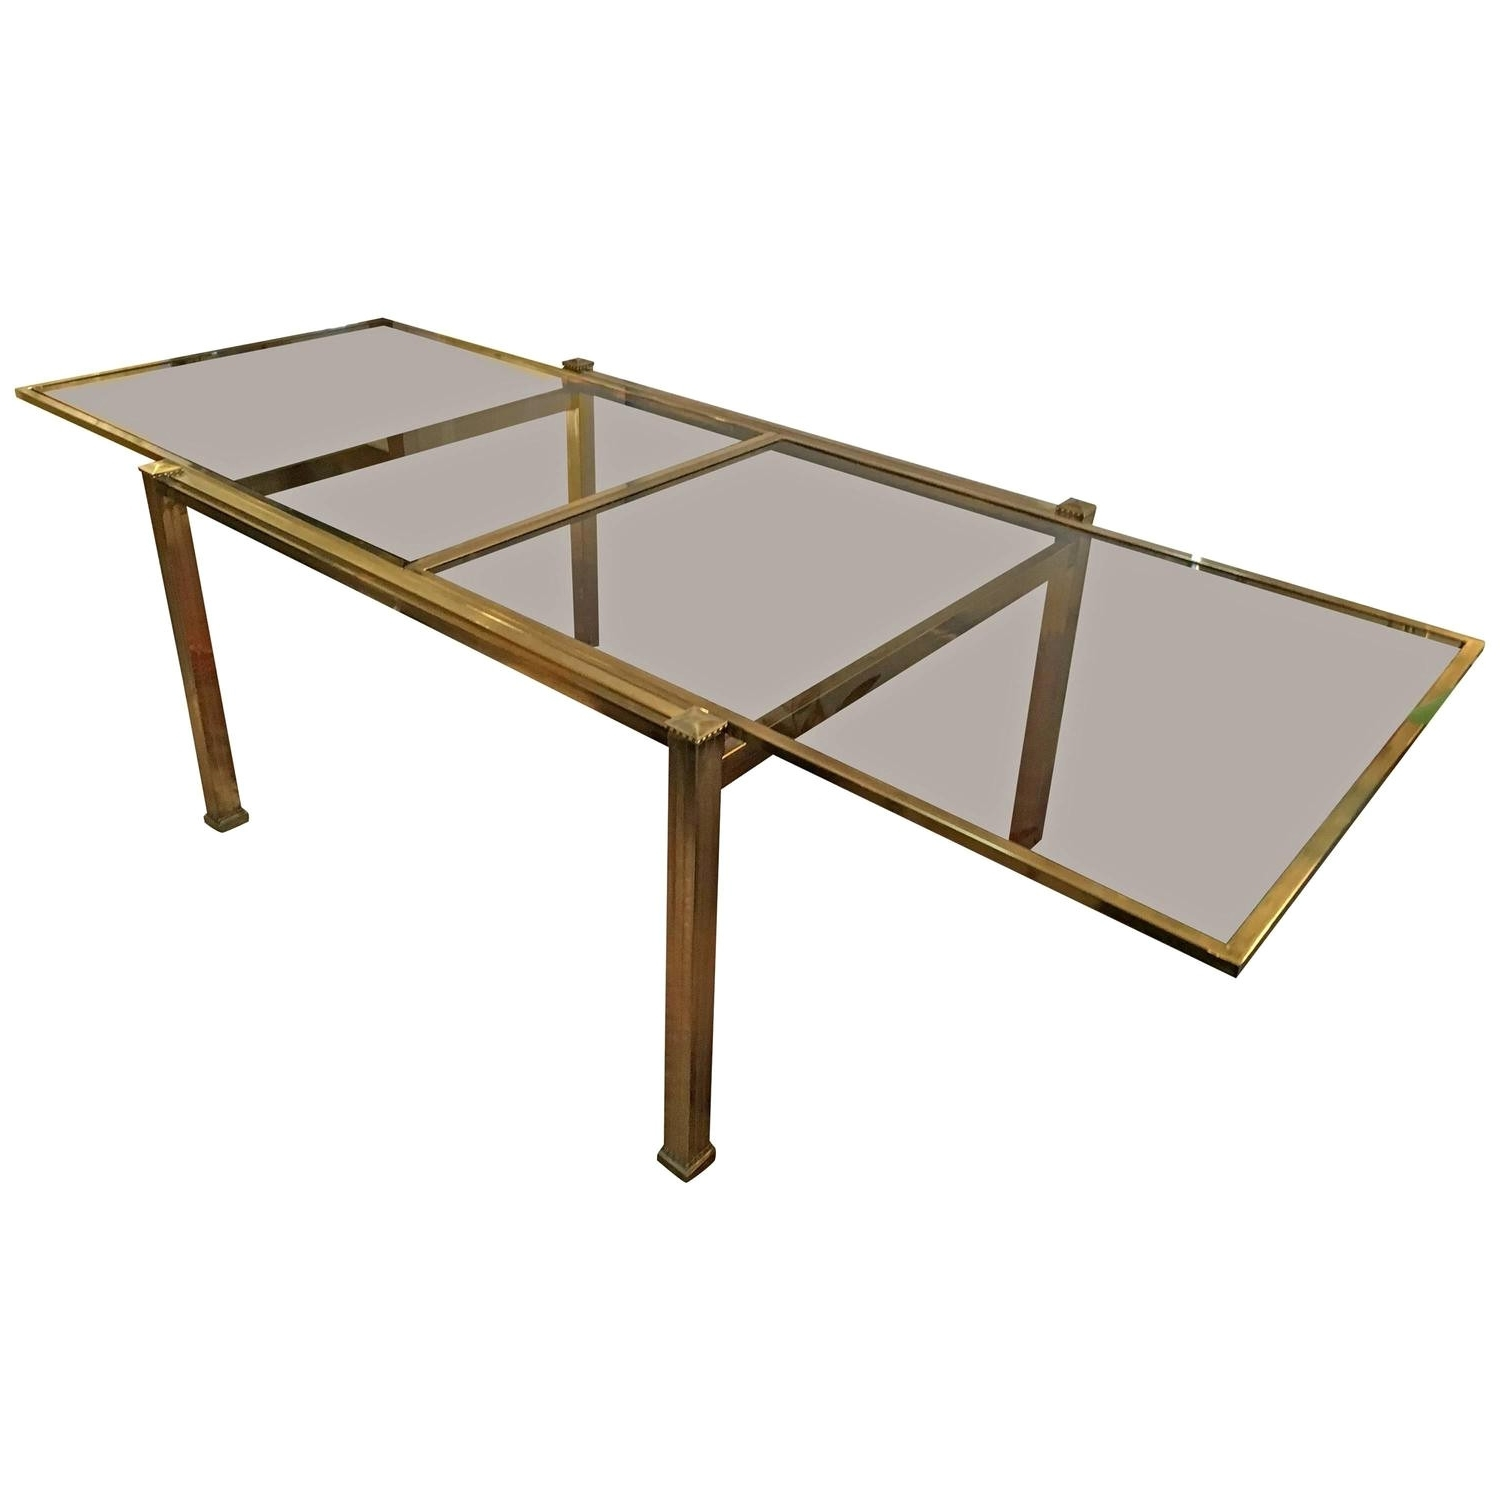 Jaxon Round Extension Dining Tables inside Newest Ideal Mastercraft Brass And Smoked Glass Extension Dining Table At